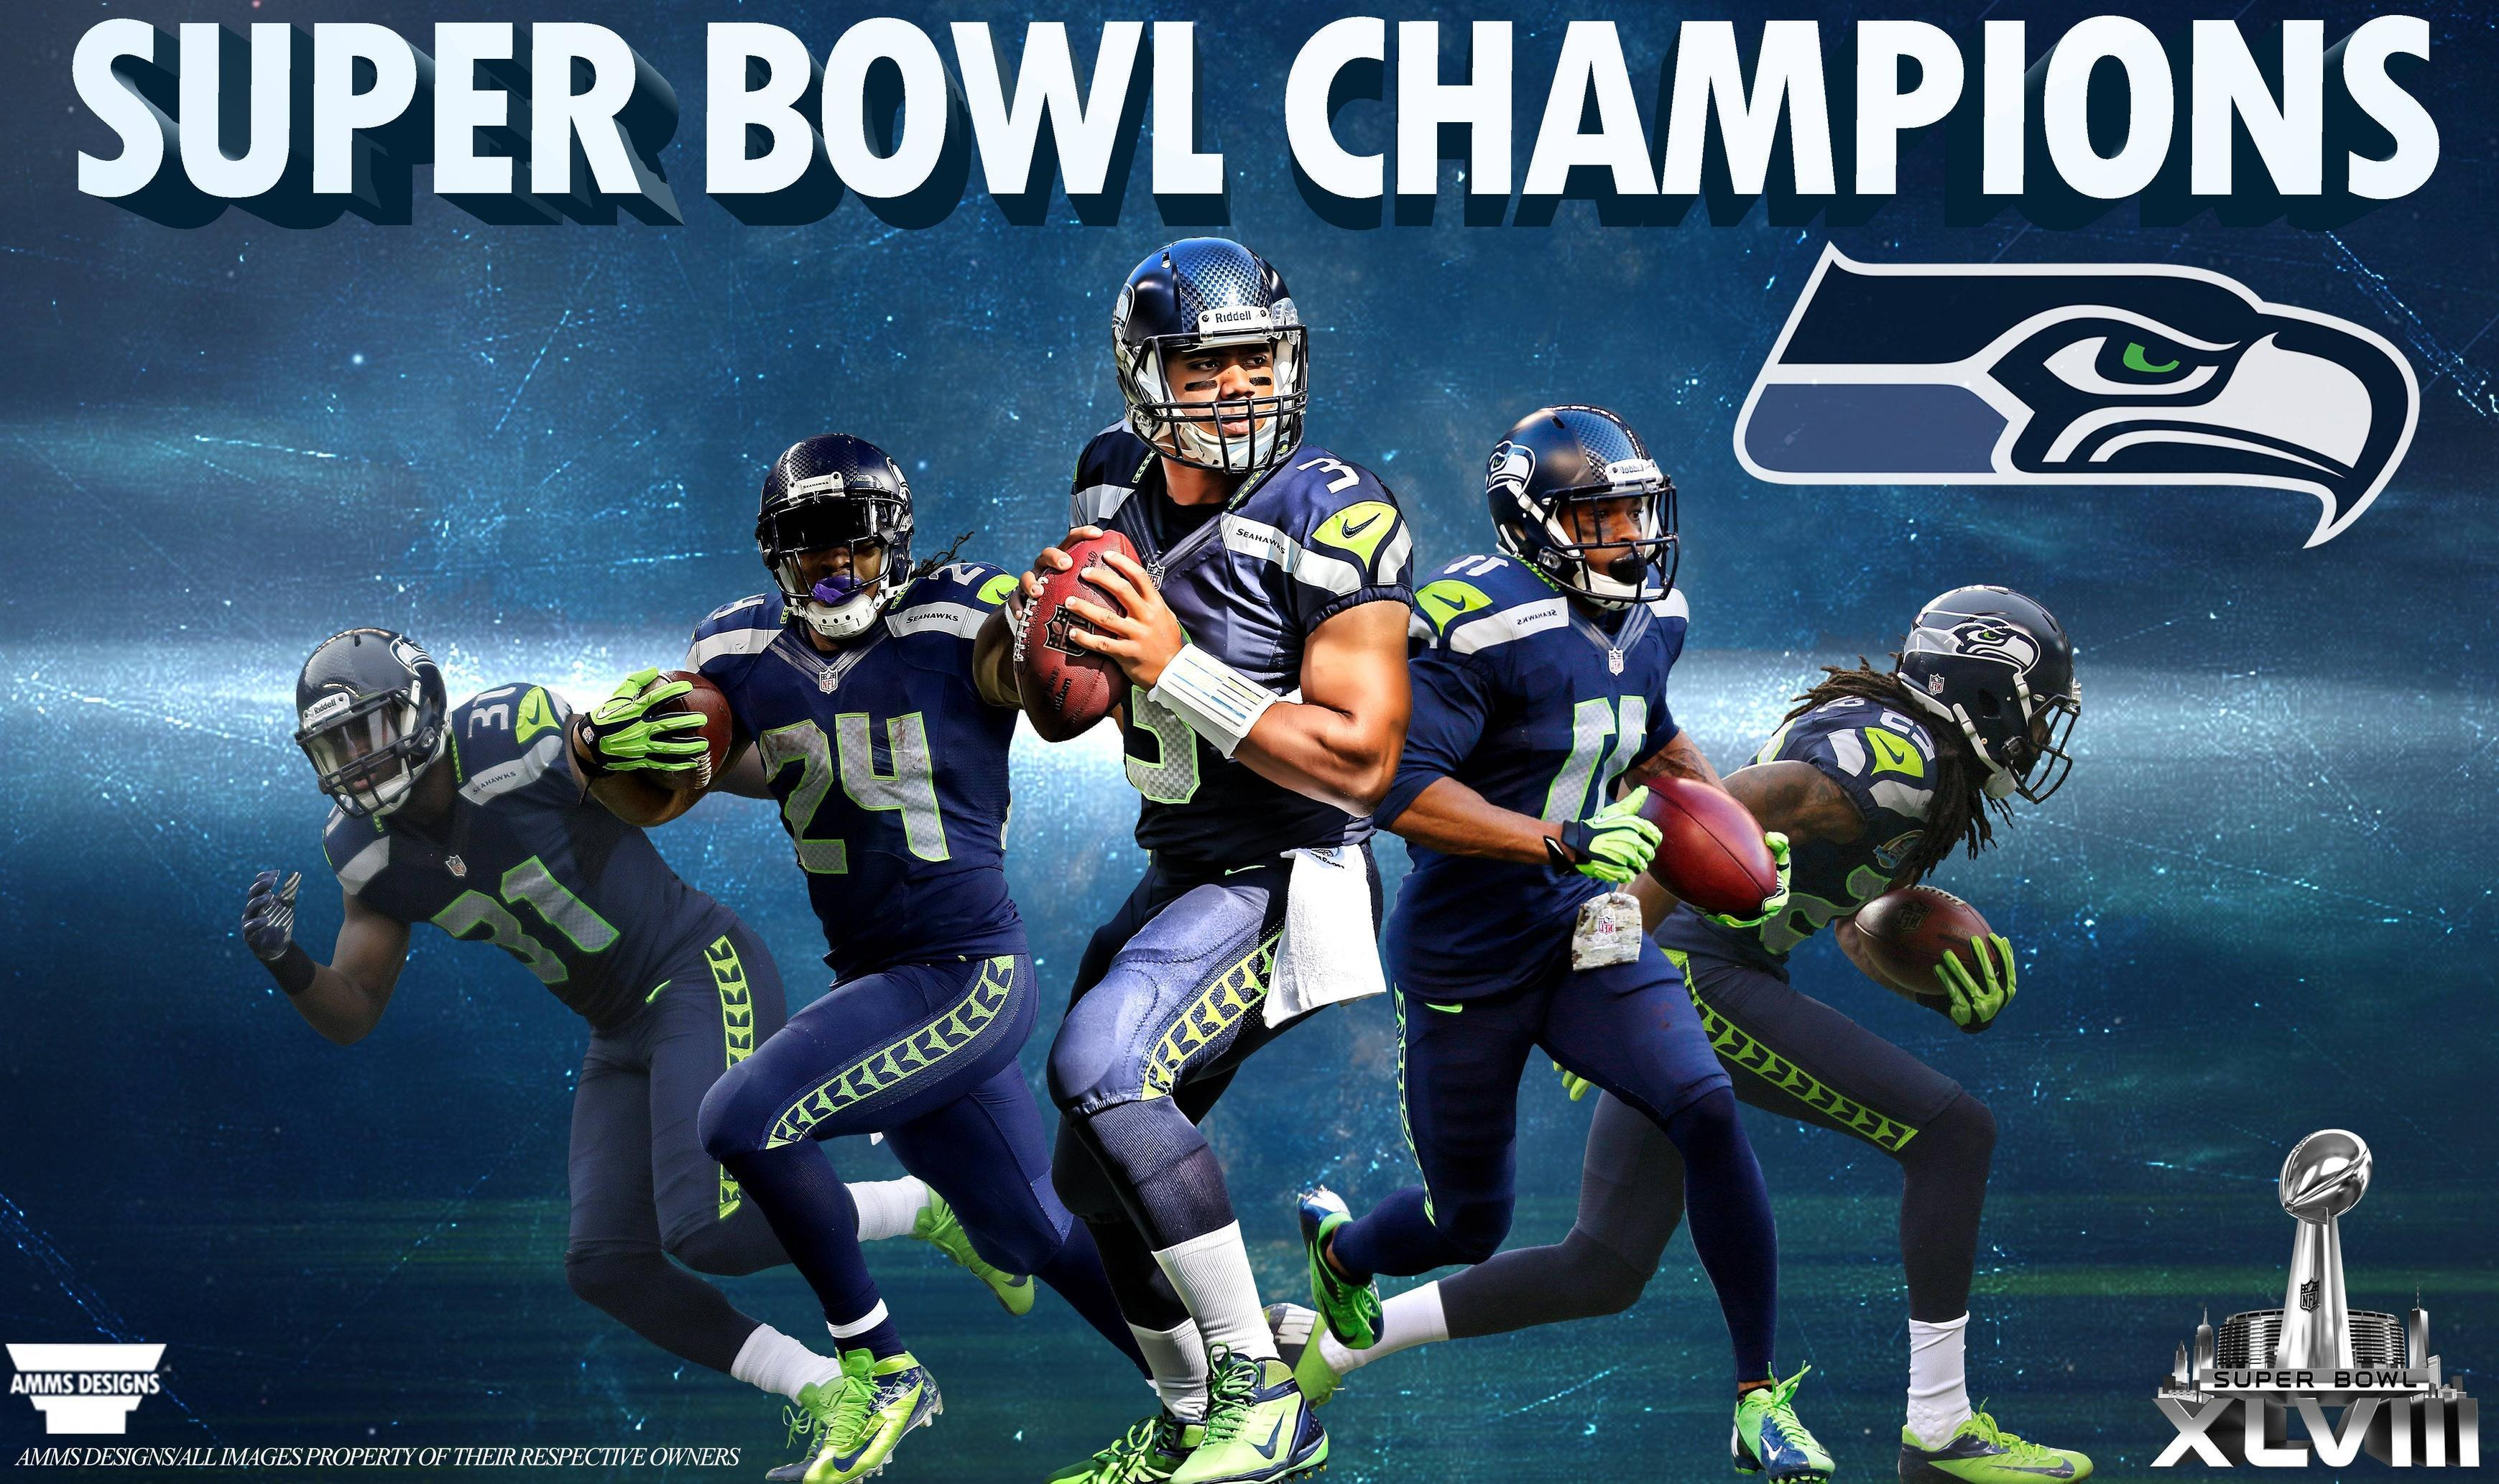 seahawks high resolution wallpaper - photo #13